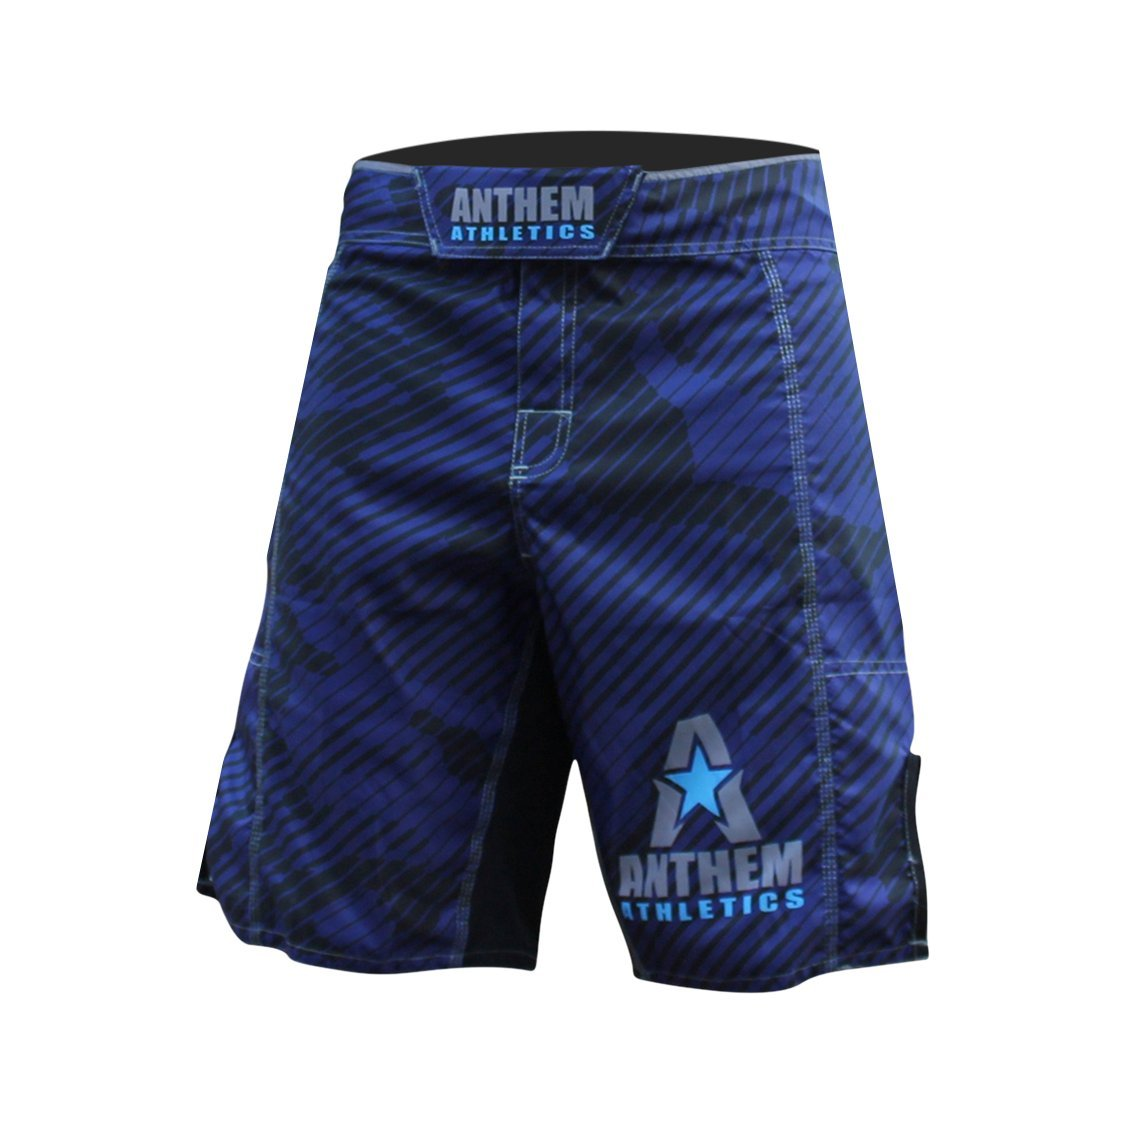 Anthem Athletics Resilience Fight Shorts - Navy Line Camo - 36'' by Anthem Athletics